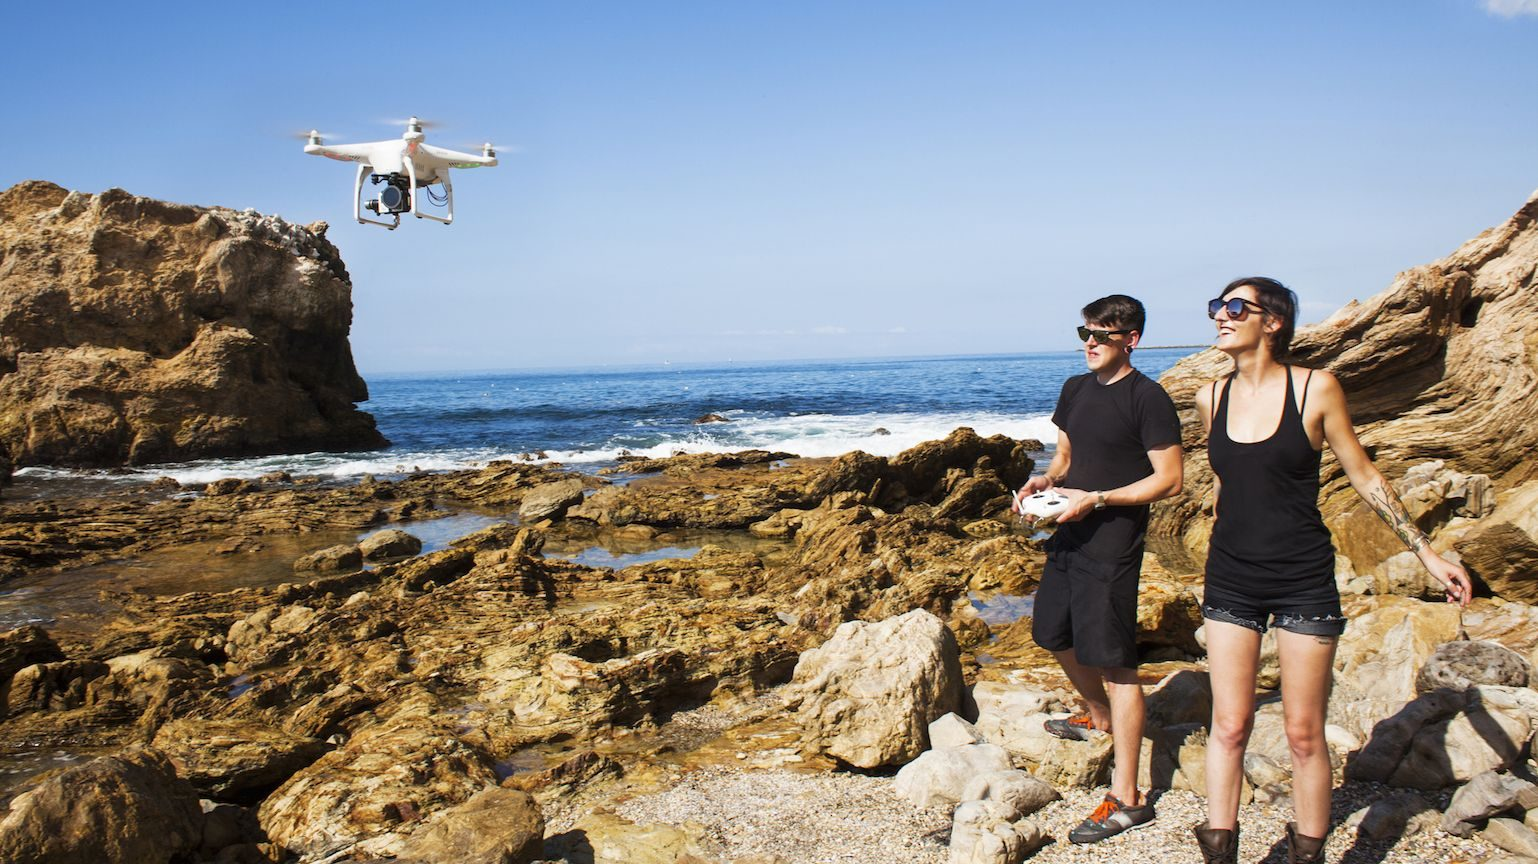 A young couple flying a drone at a rocky beach